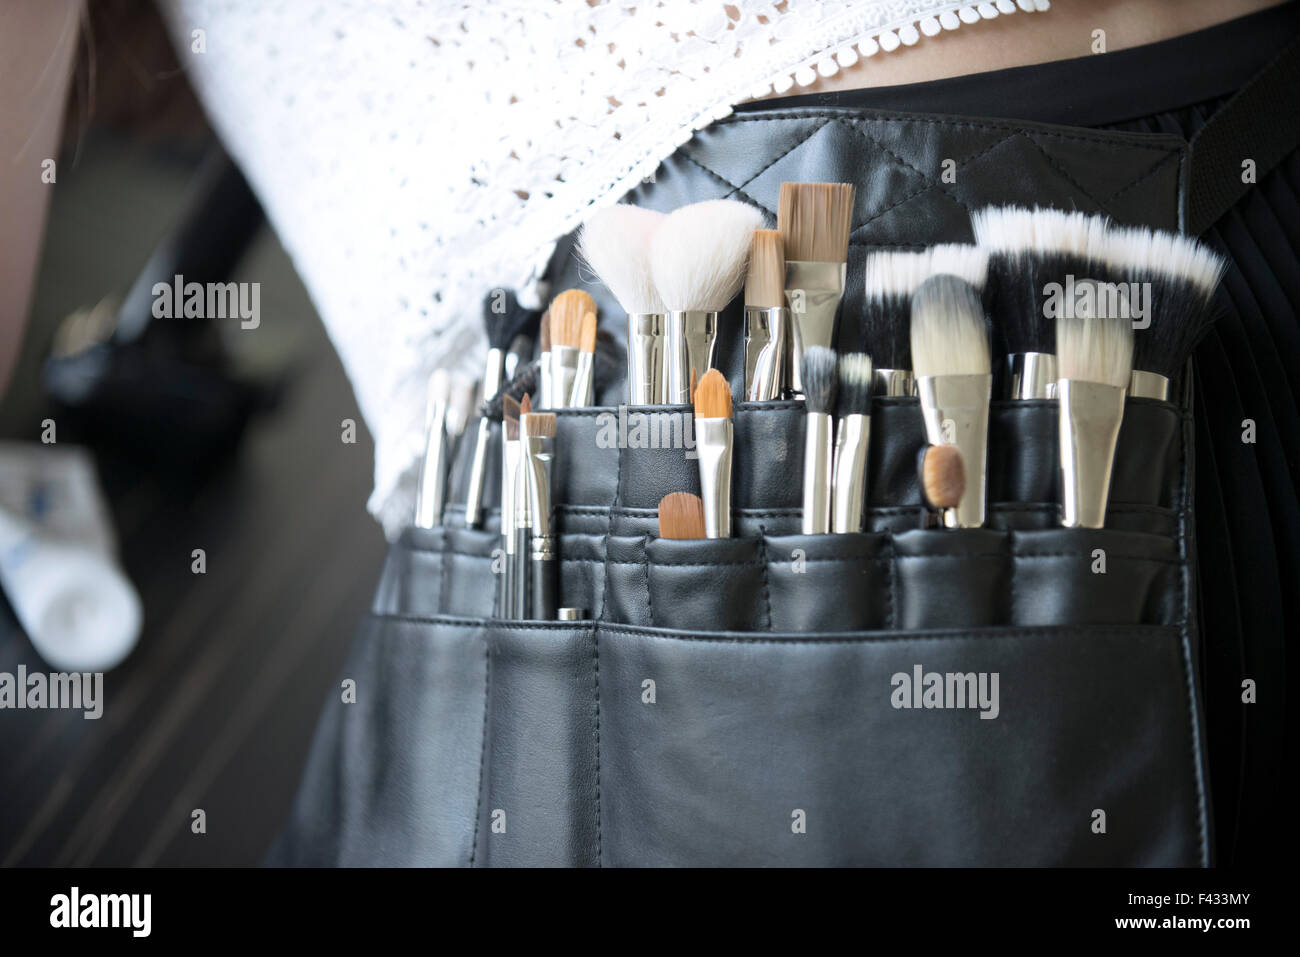 Makeup artist's brush pouch, close-up Stock Photo